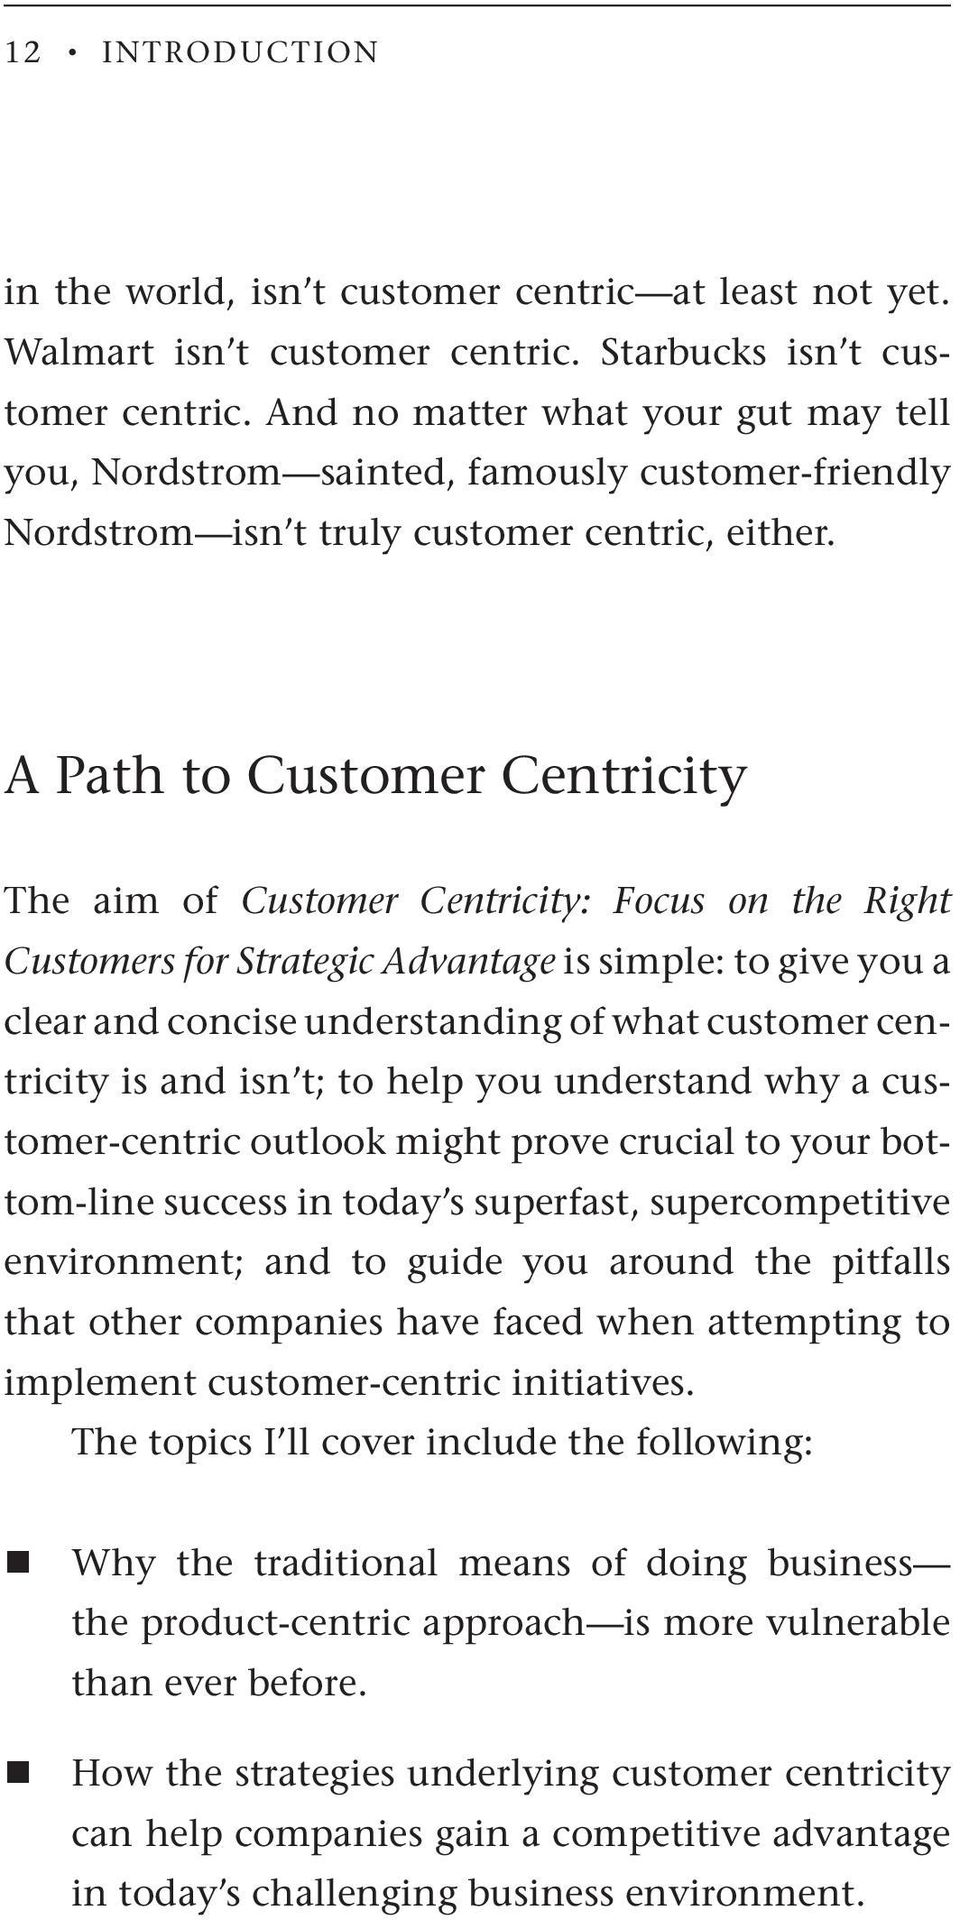 A Path to Customer Centricity The aim of Customer Centricity: Focus on the Right Customers for Strategic Advantage is simple: to give you a clear and concise understanding of what customer centricity